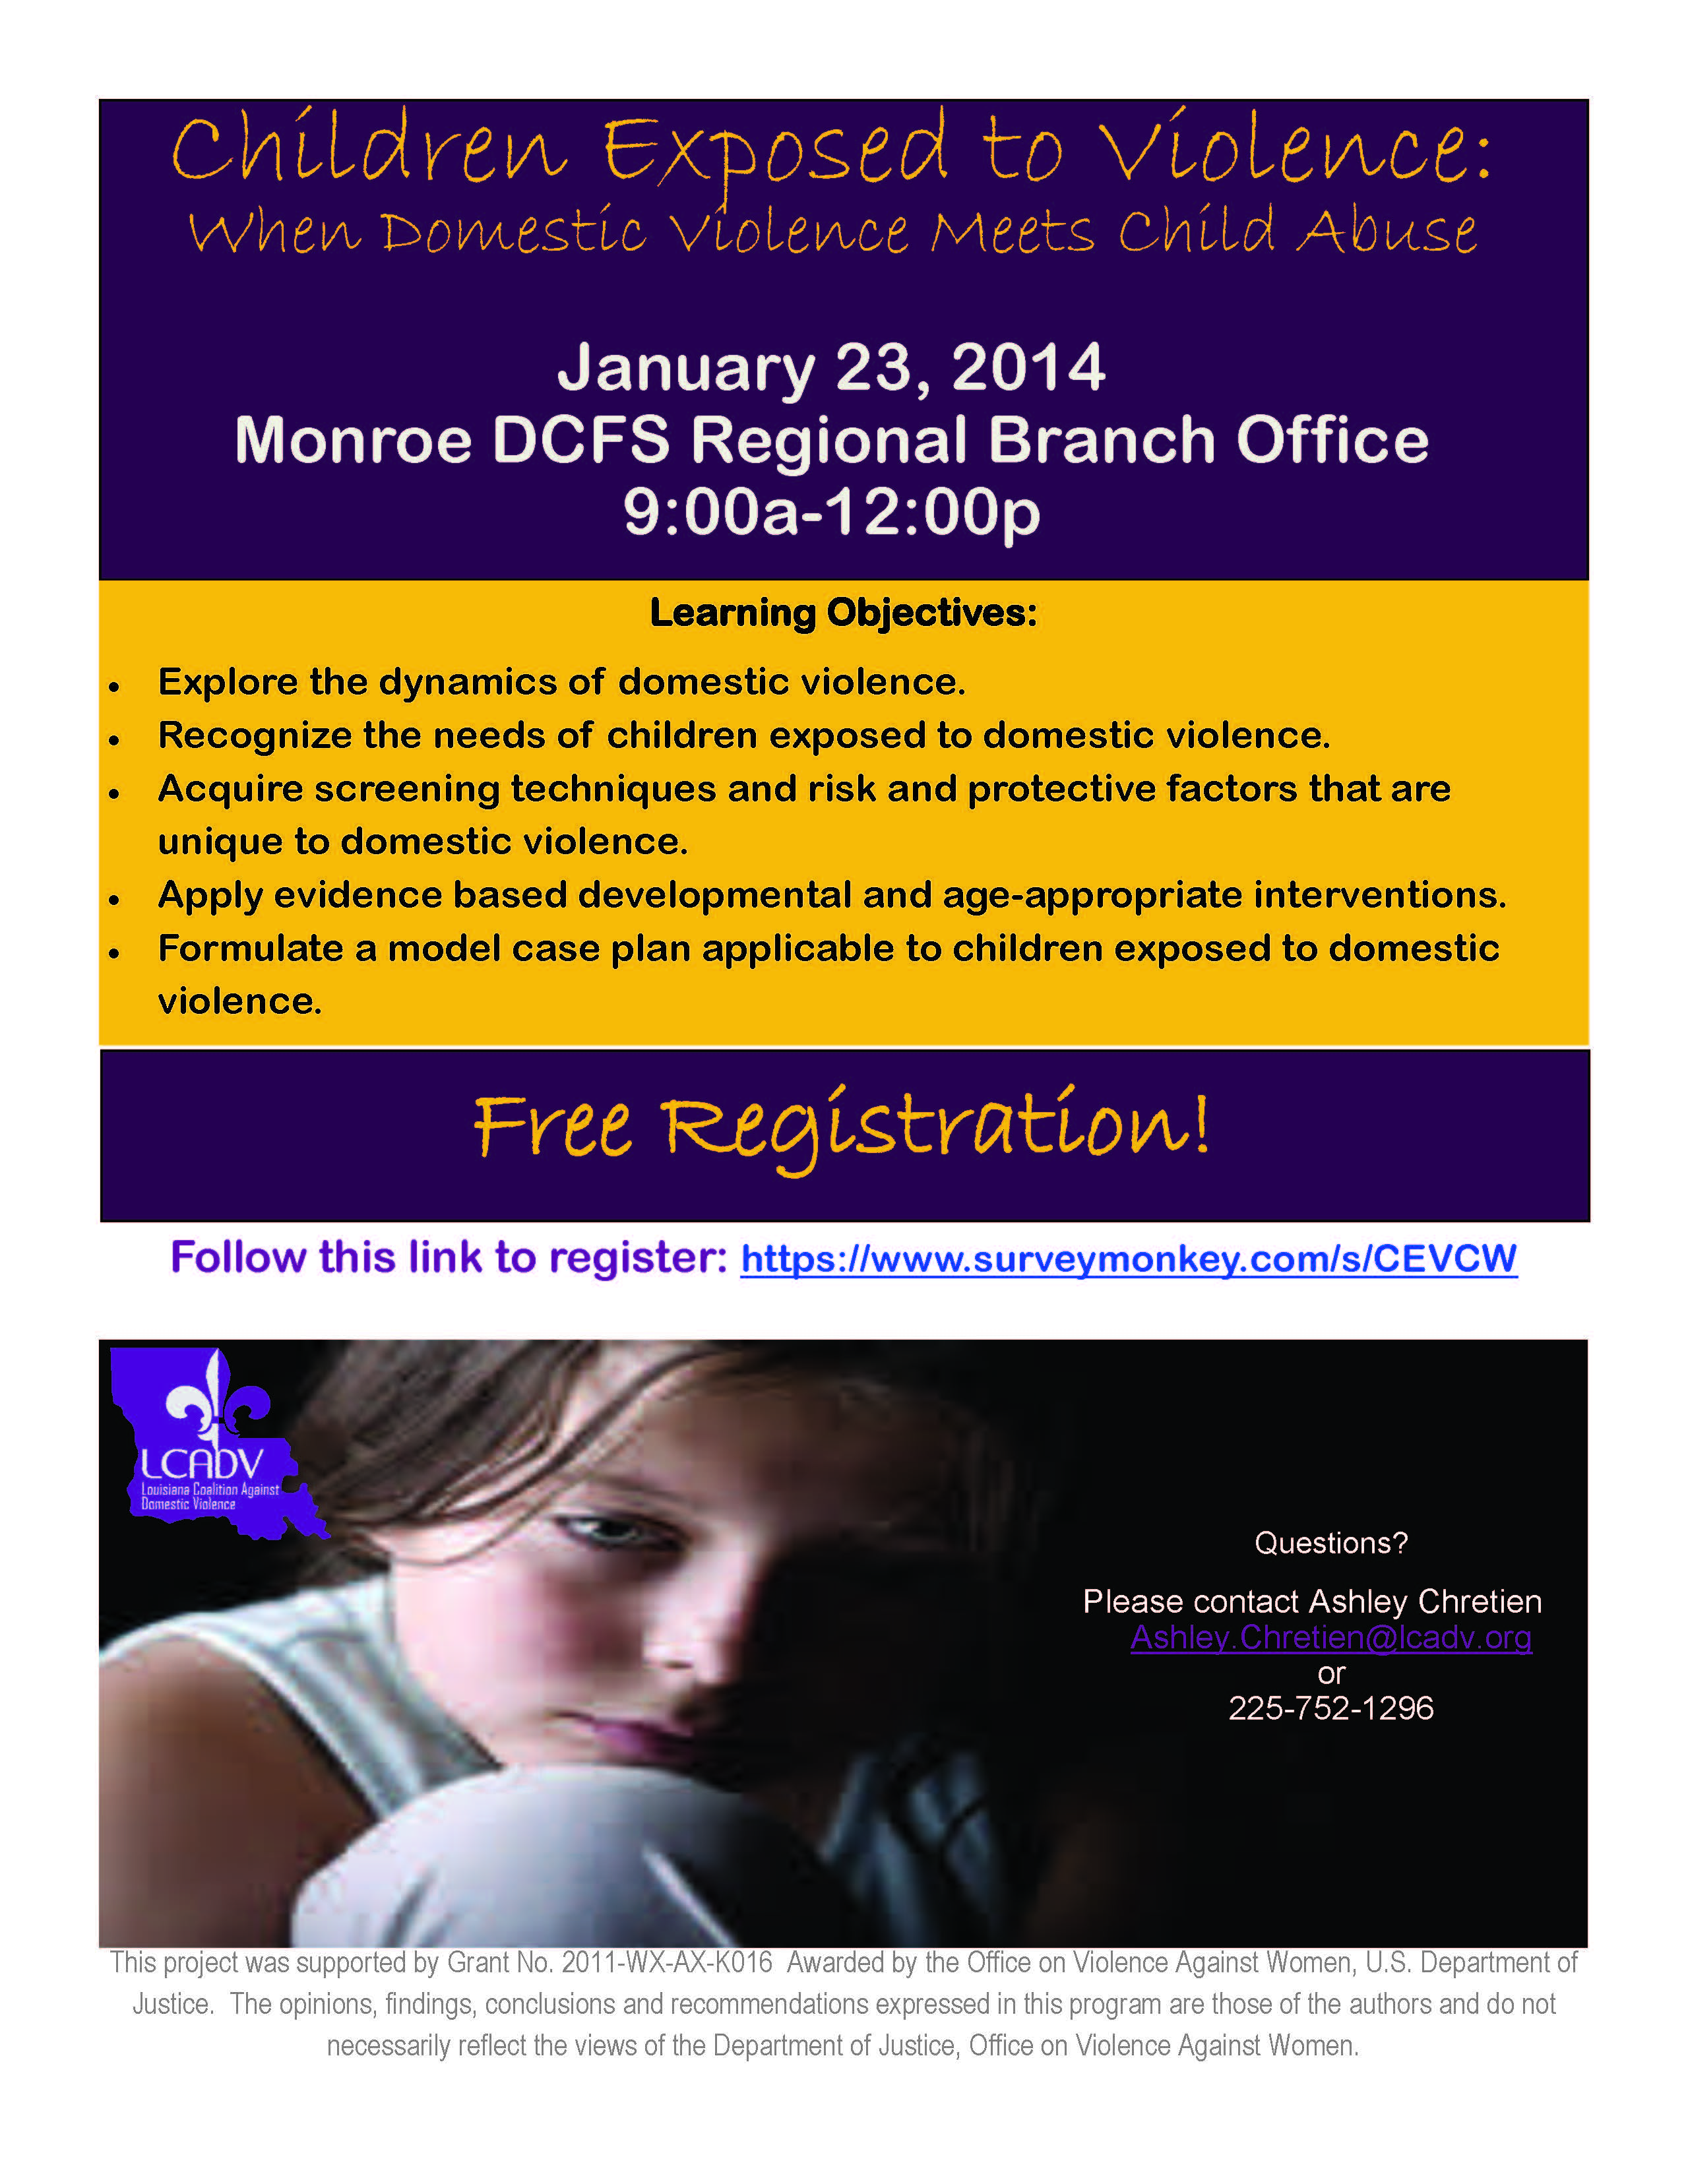 Children Exposed to Violence: When Domestic Violence Meets Child Abuse @ DCFS Regional Office | Monroe | Louisiana | United States